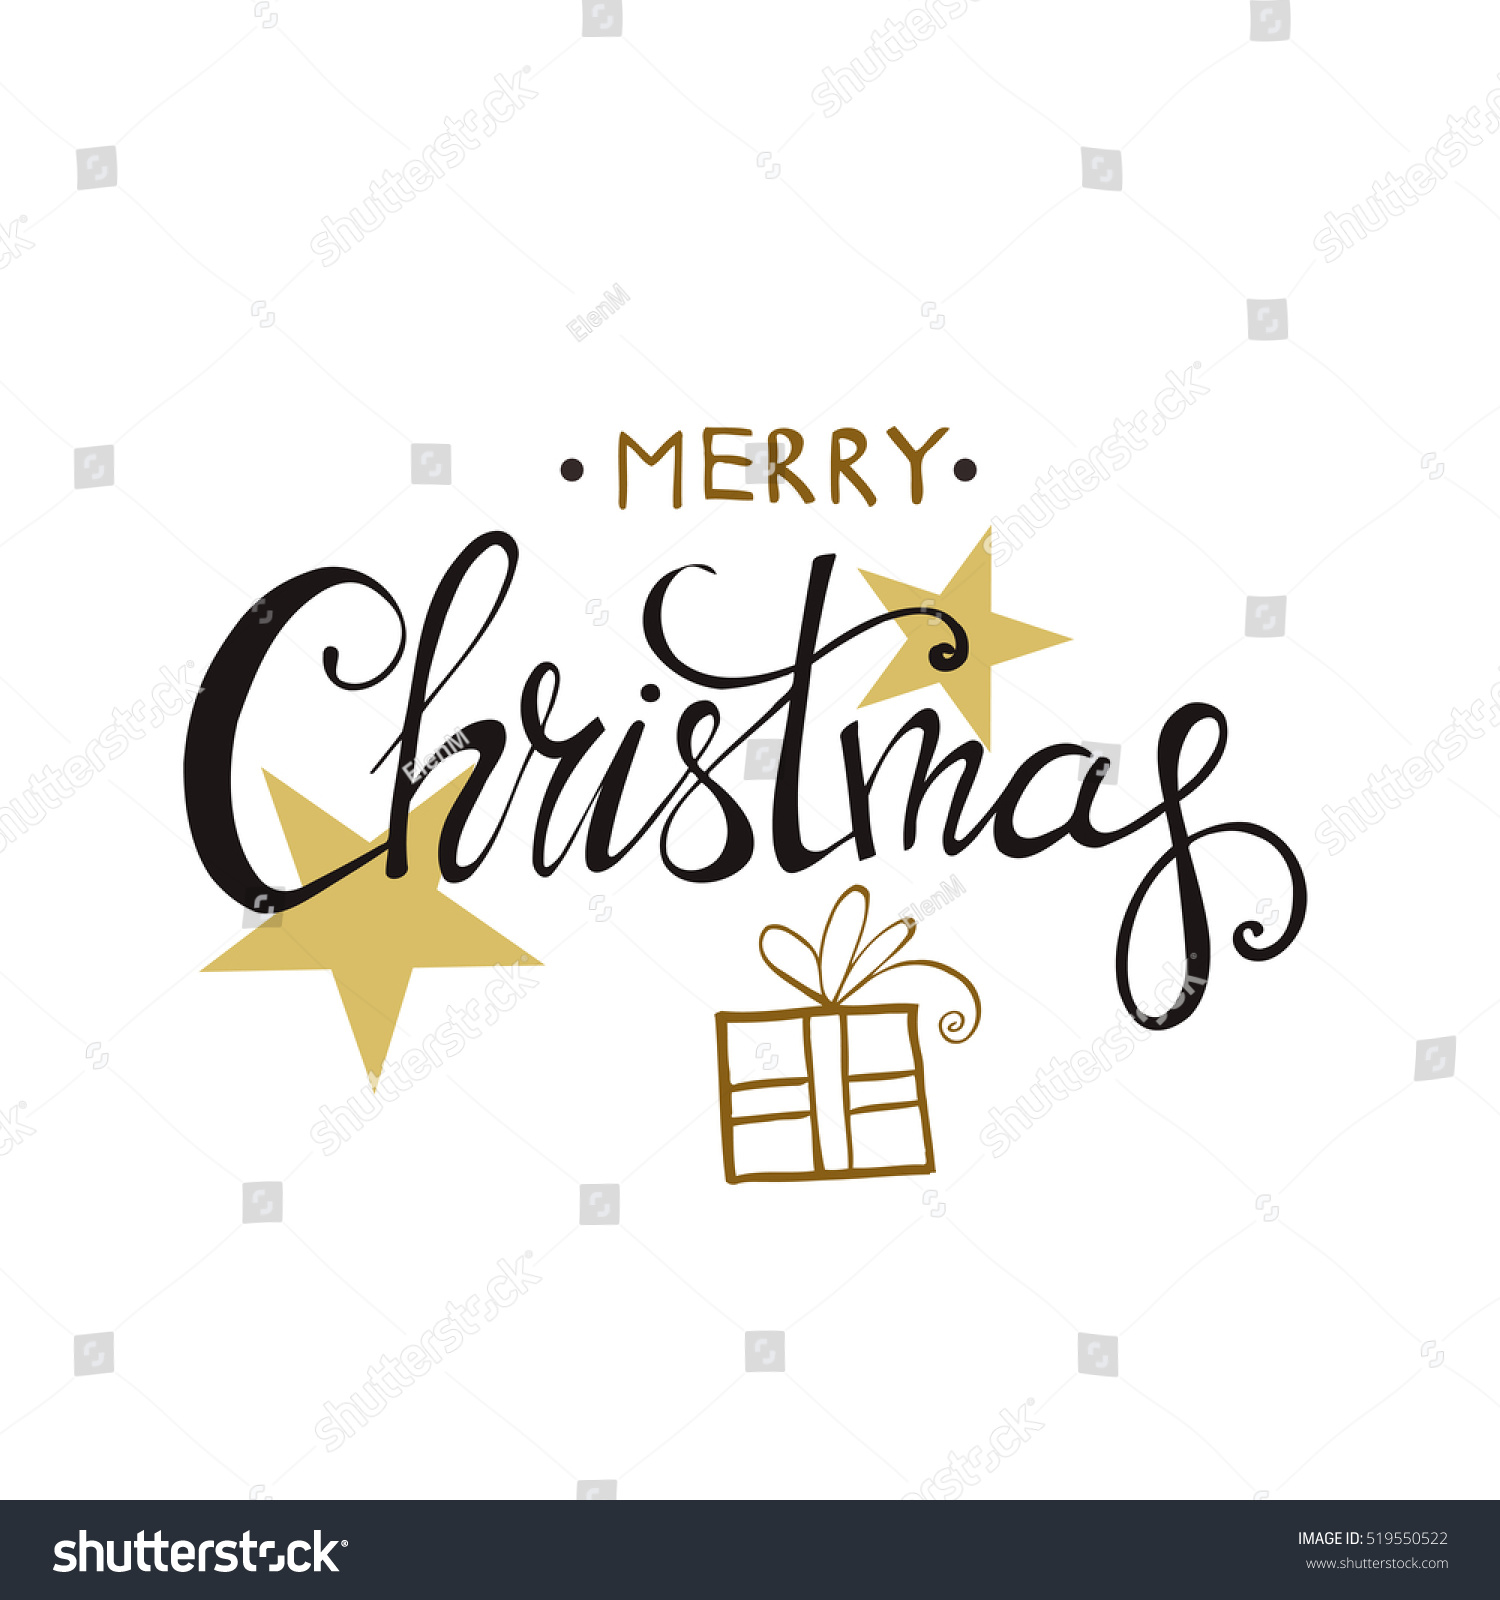 Merry Christmas Lettering Design Happy New Year Black and gold colors Christmas series